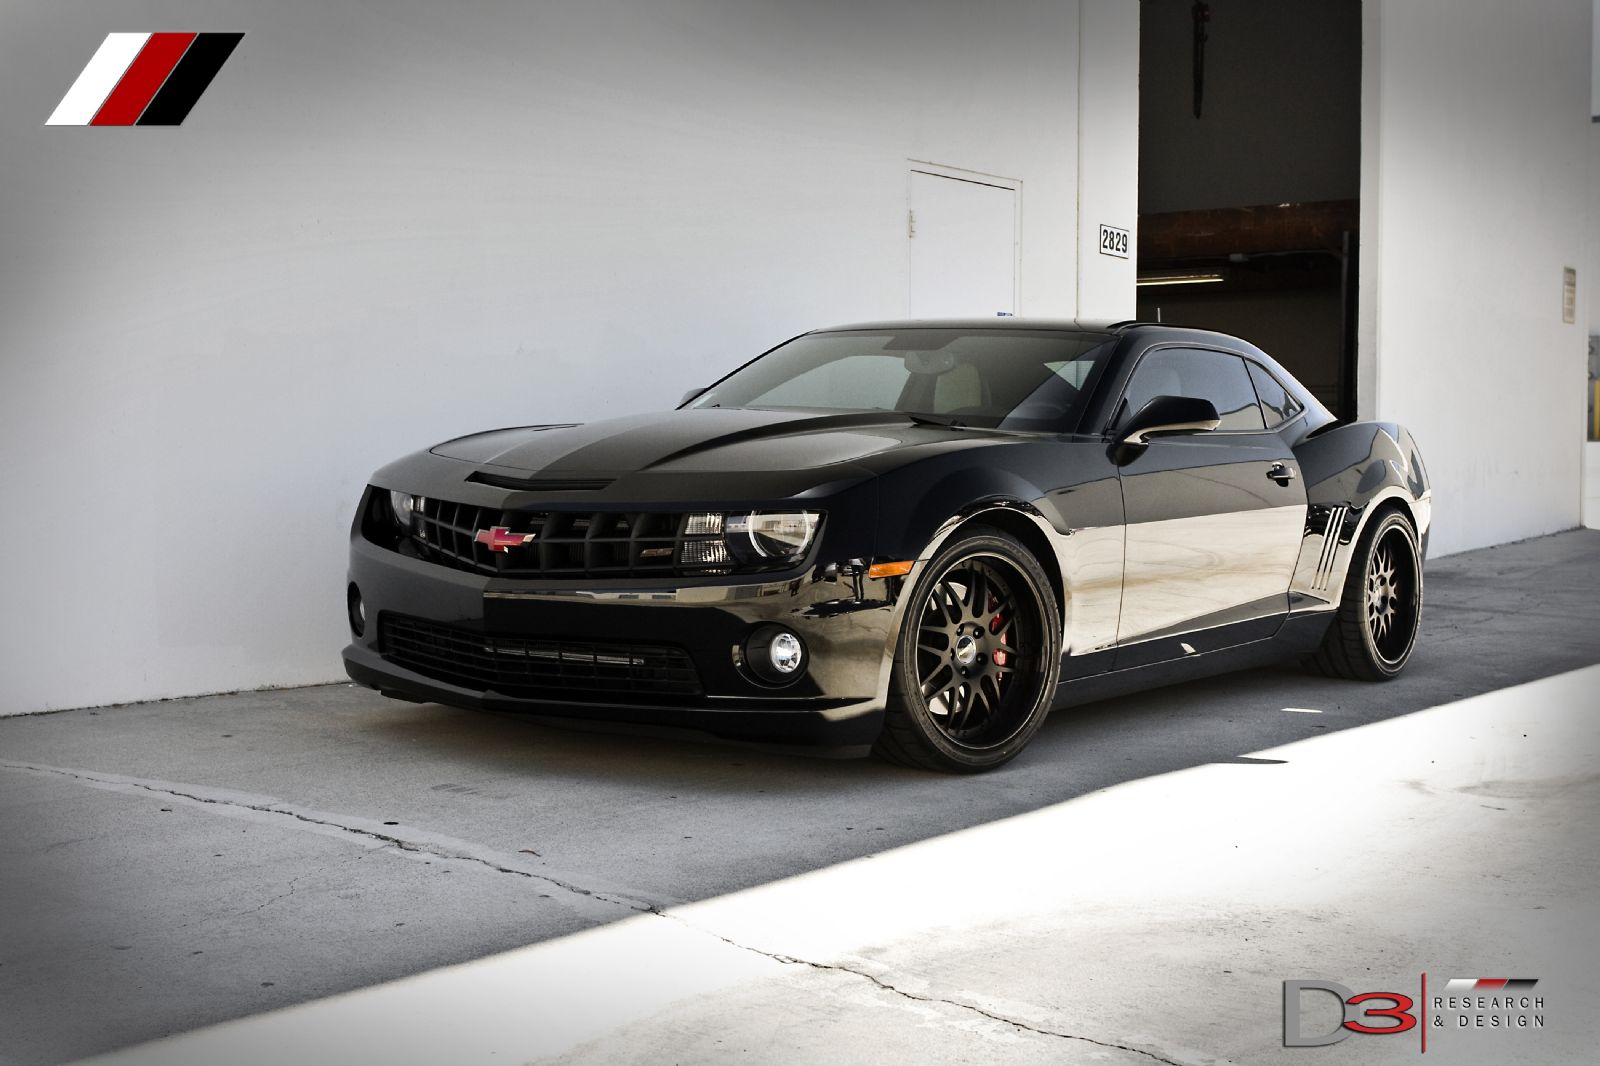 2010 chevrolet camaro 2ss rs for sale sun valley idaho. Black Bedroom Furniture Sets. Home Design Ideas